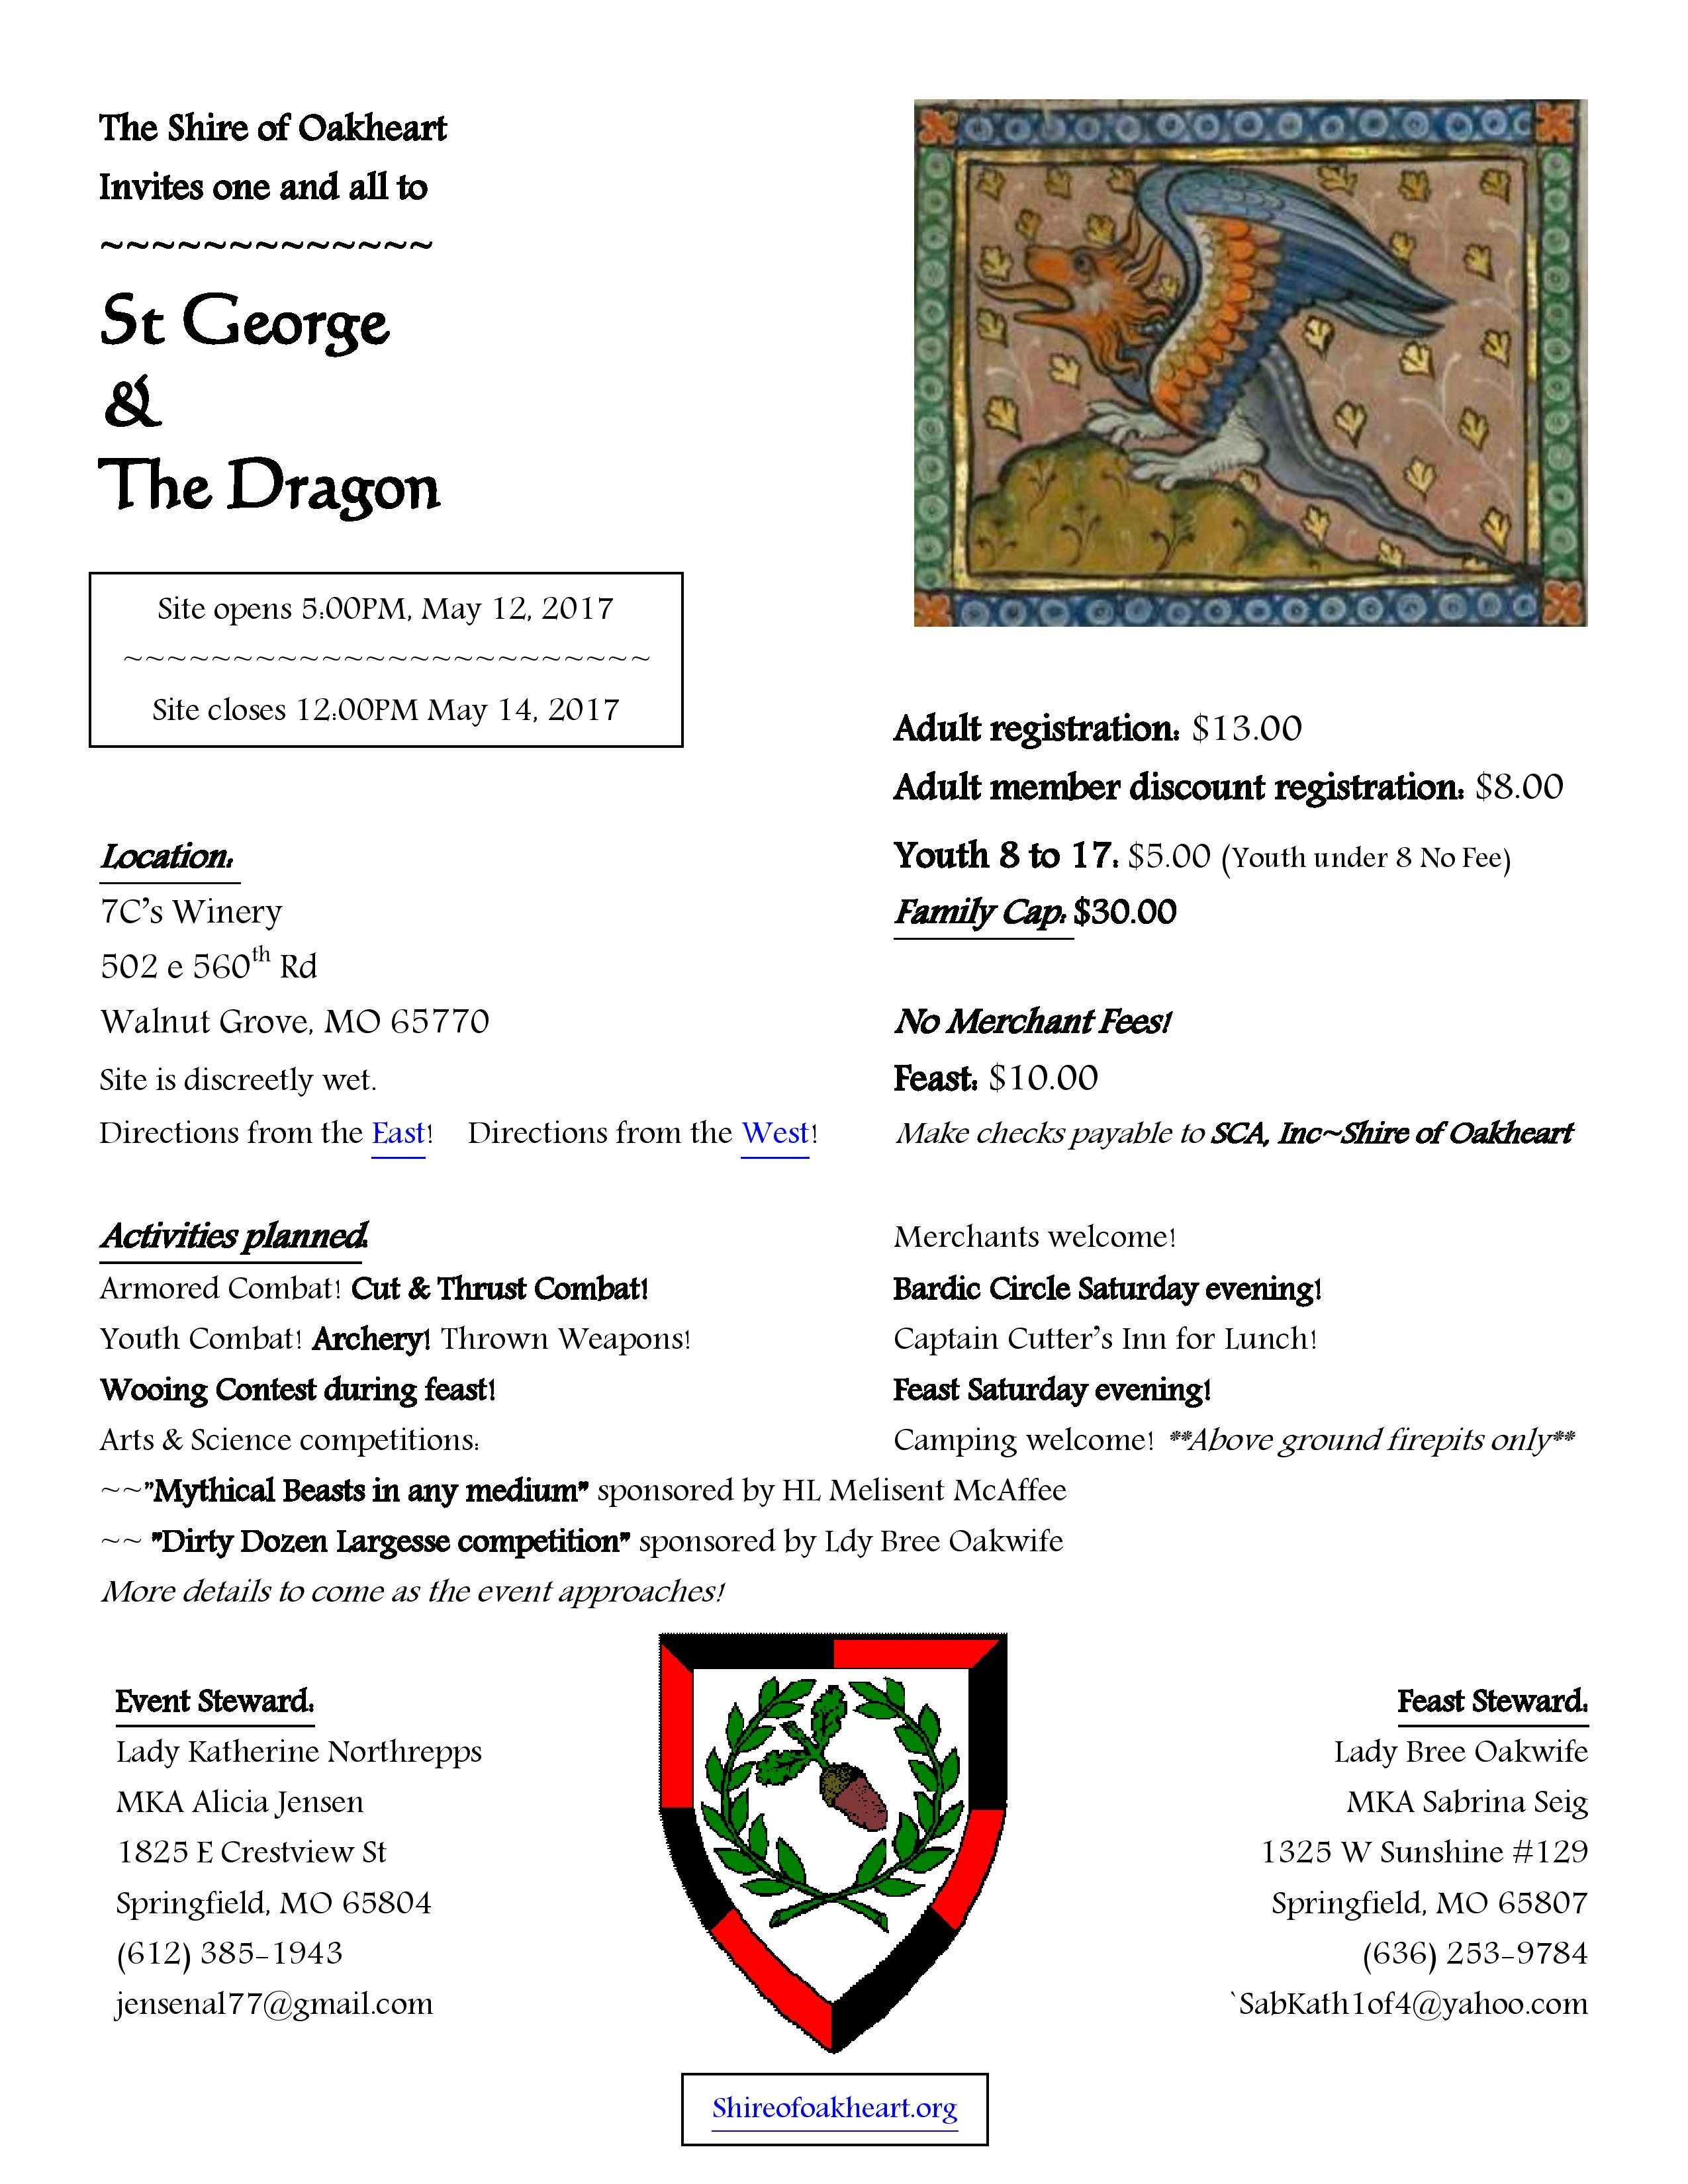 St George & The Dragon 2017 - Shire of Oakheart @ 7C's Winery